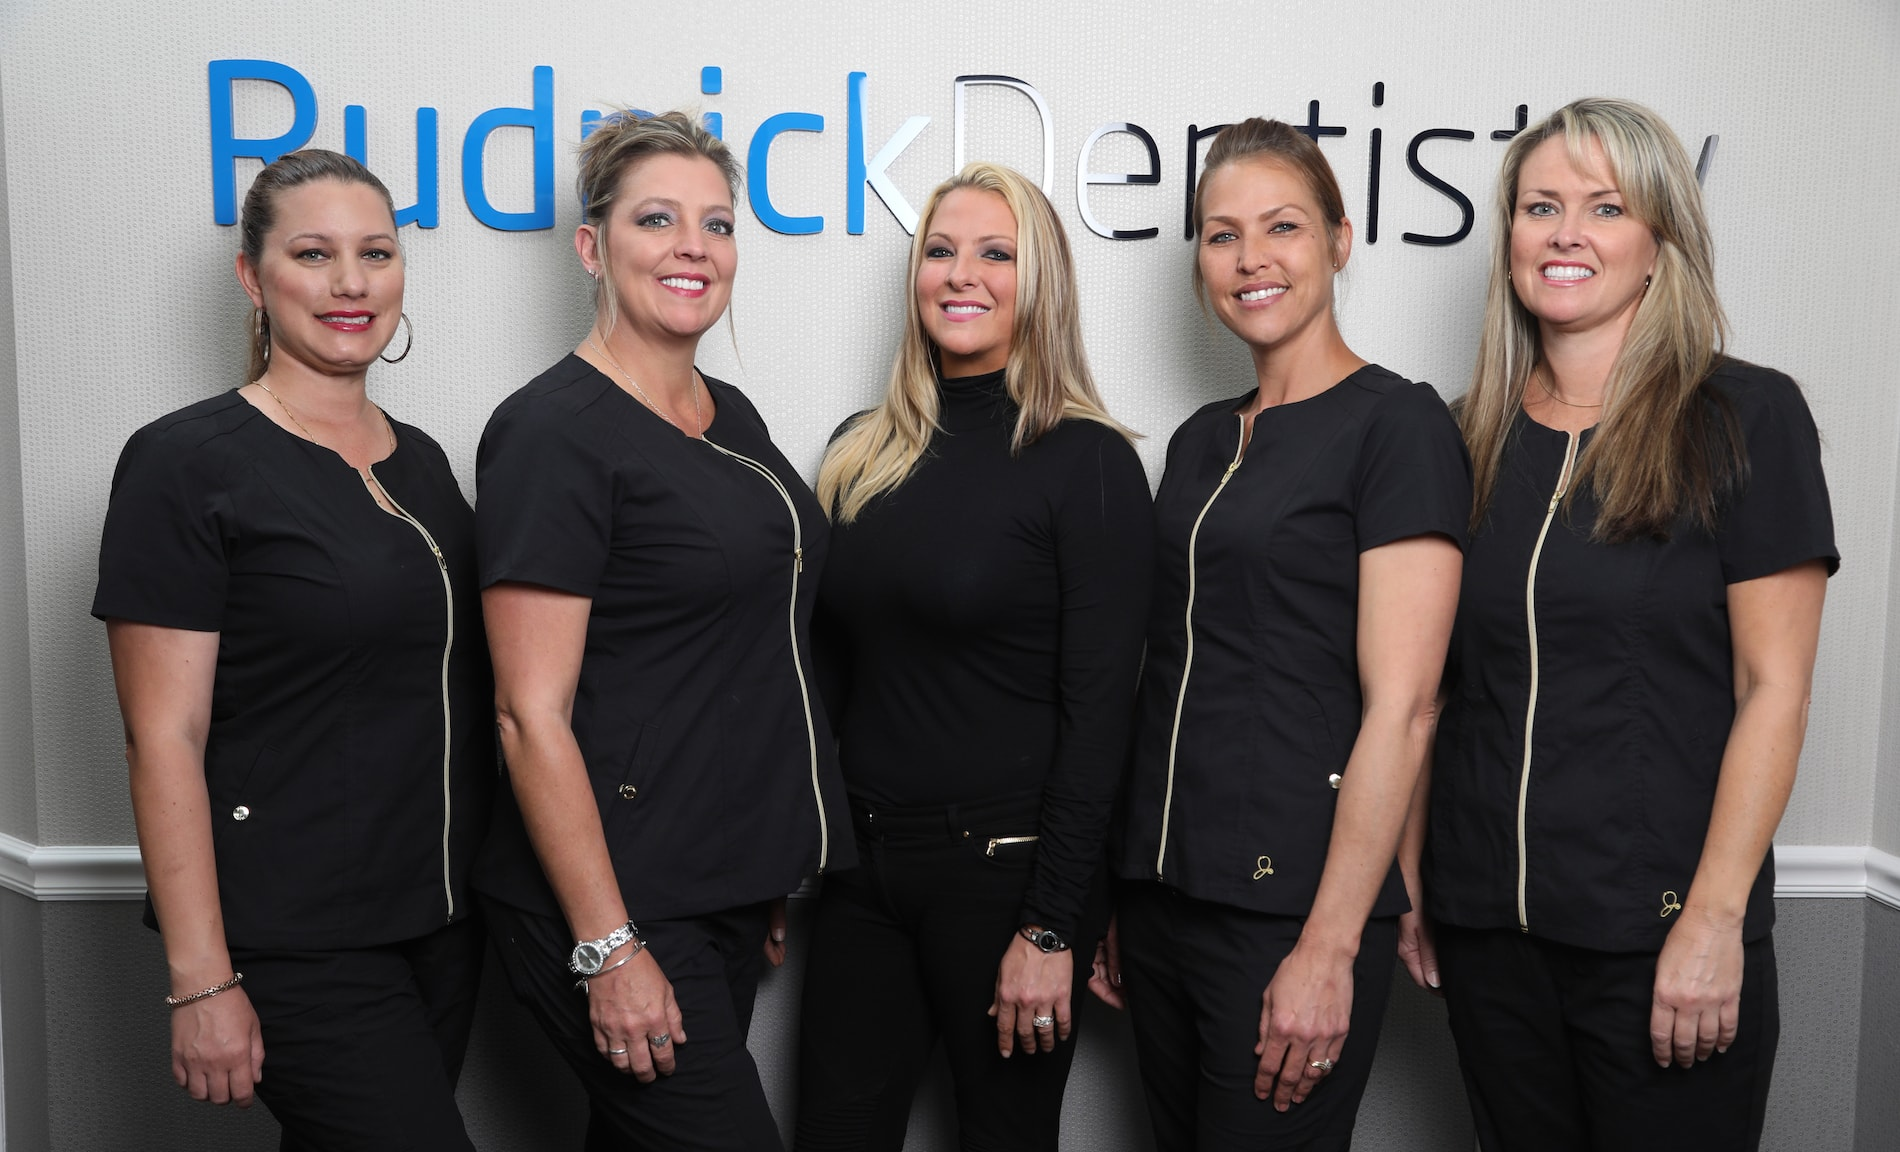 The team at Rudnick Dentistry one of the leading dentists in Palm Beach Gardens